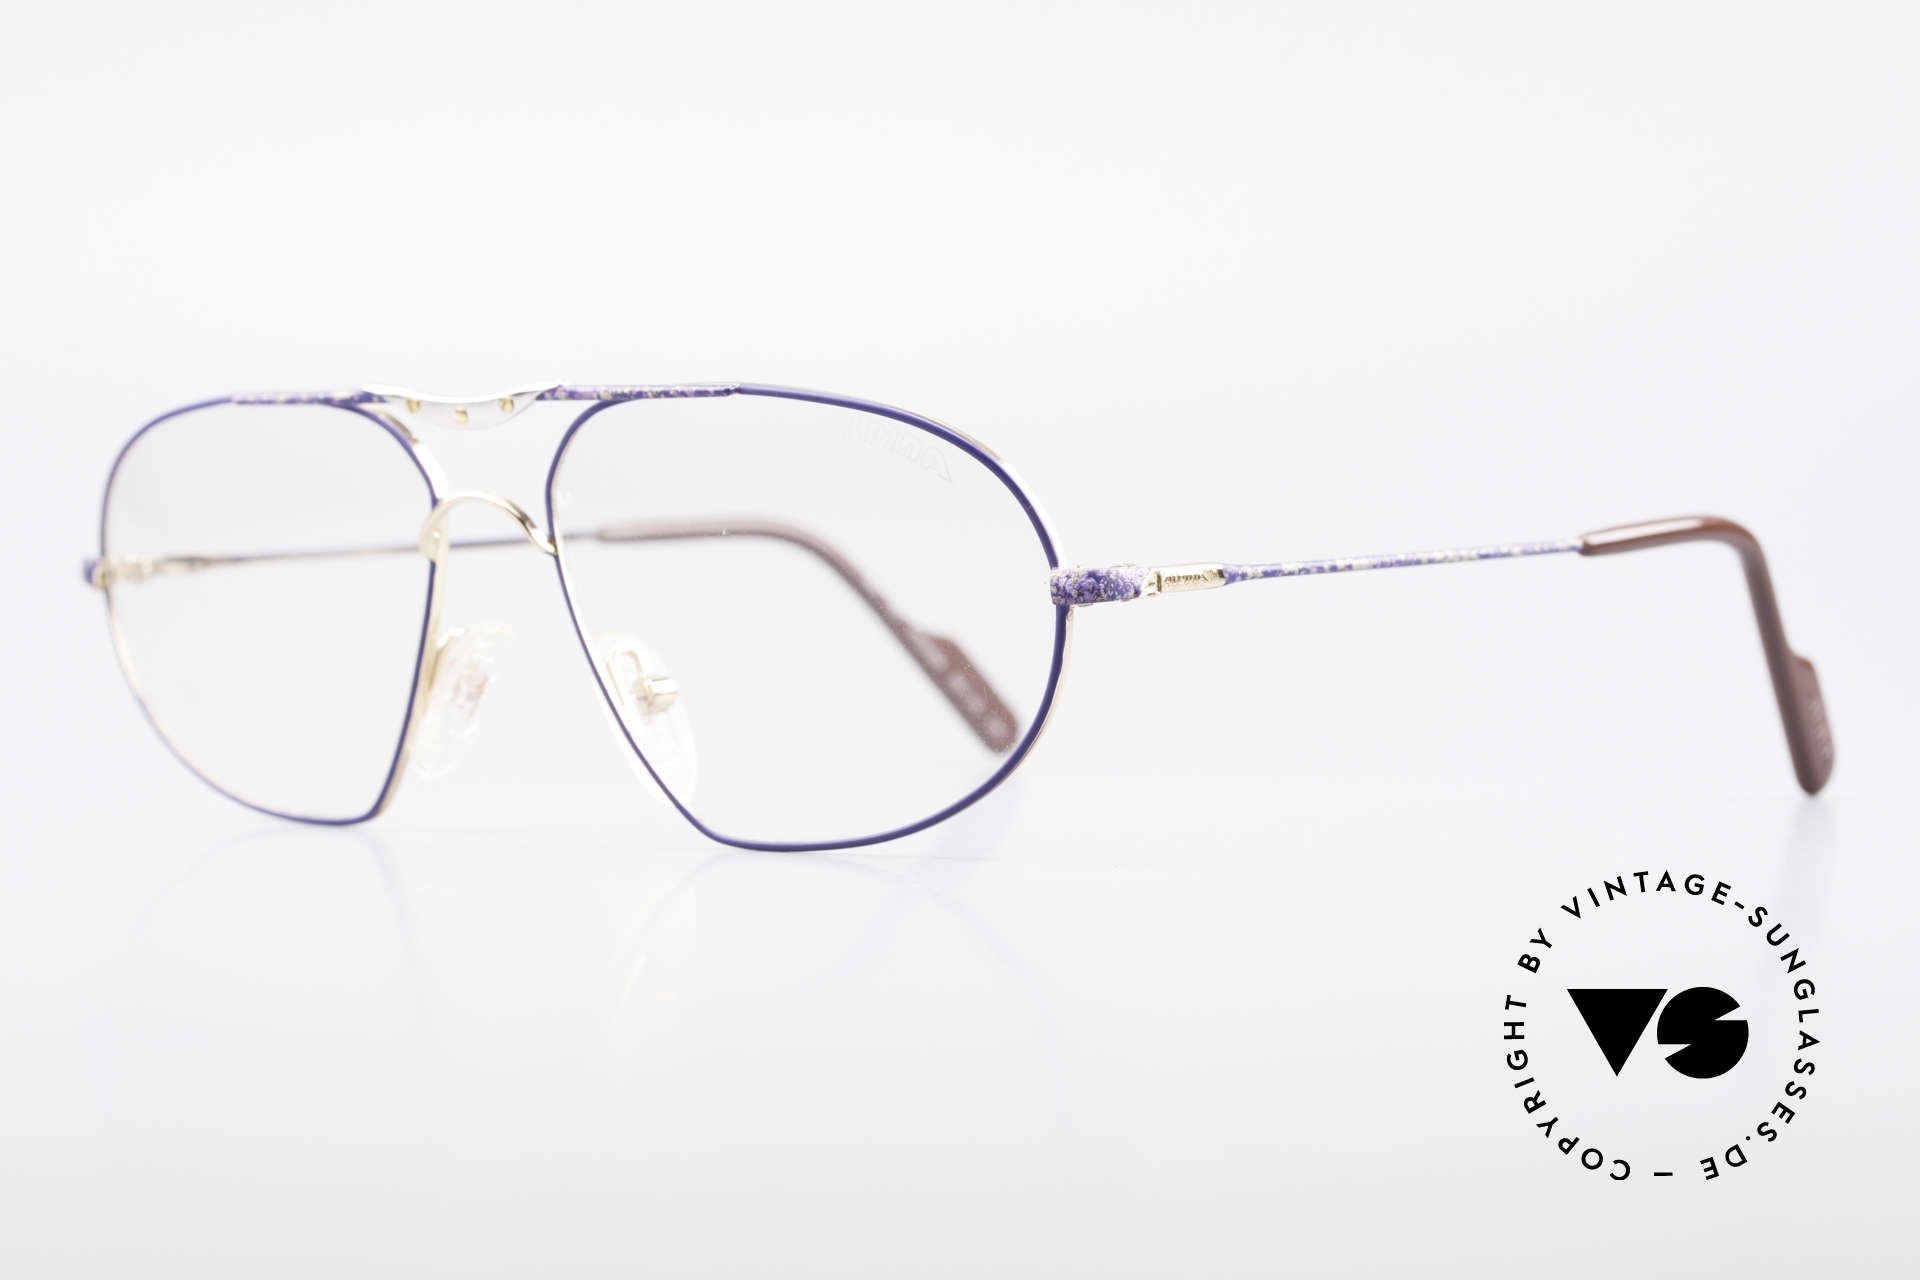 Alpina M1F755 Old Classic Men's Eyeglasses, gold-plated men's frame with a striking blue pattern, Made for Men